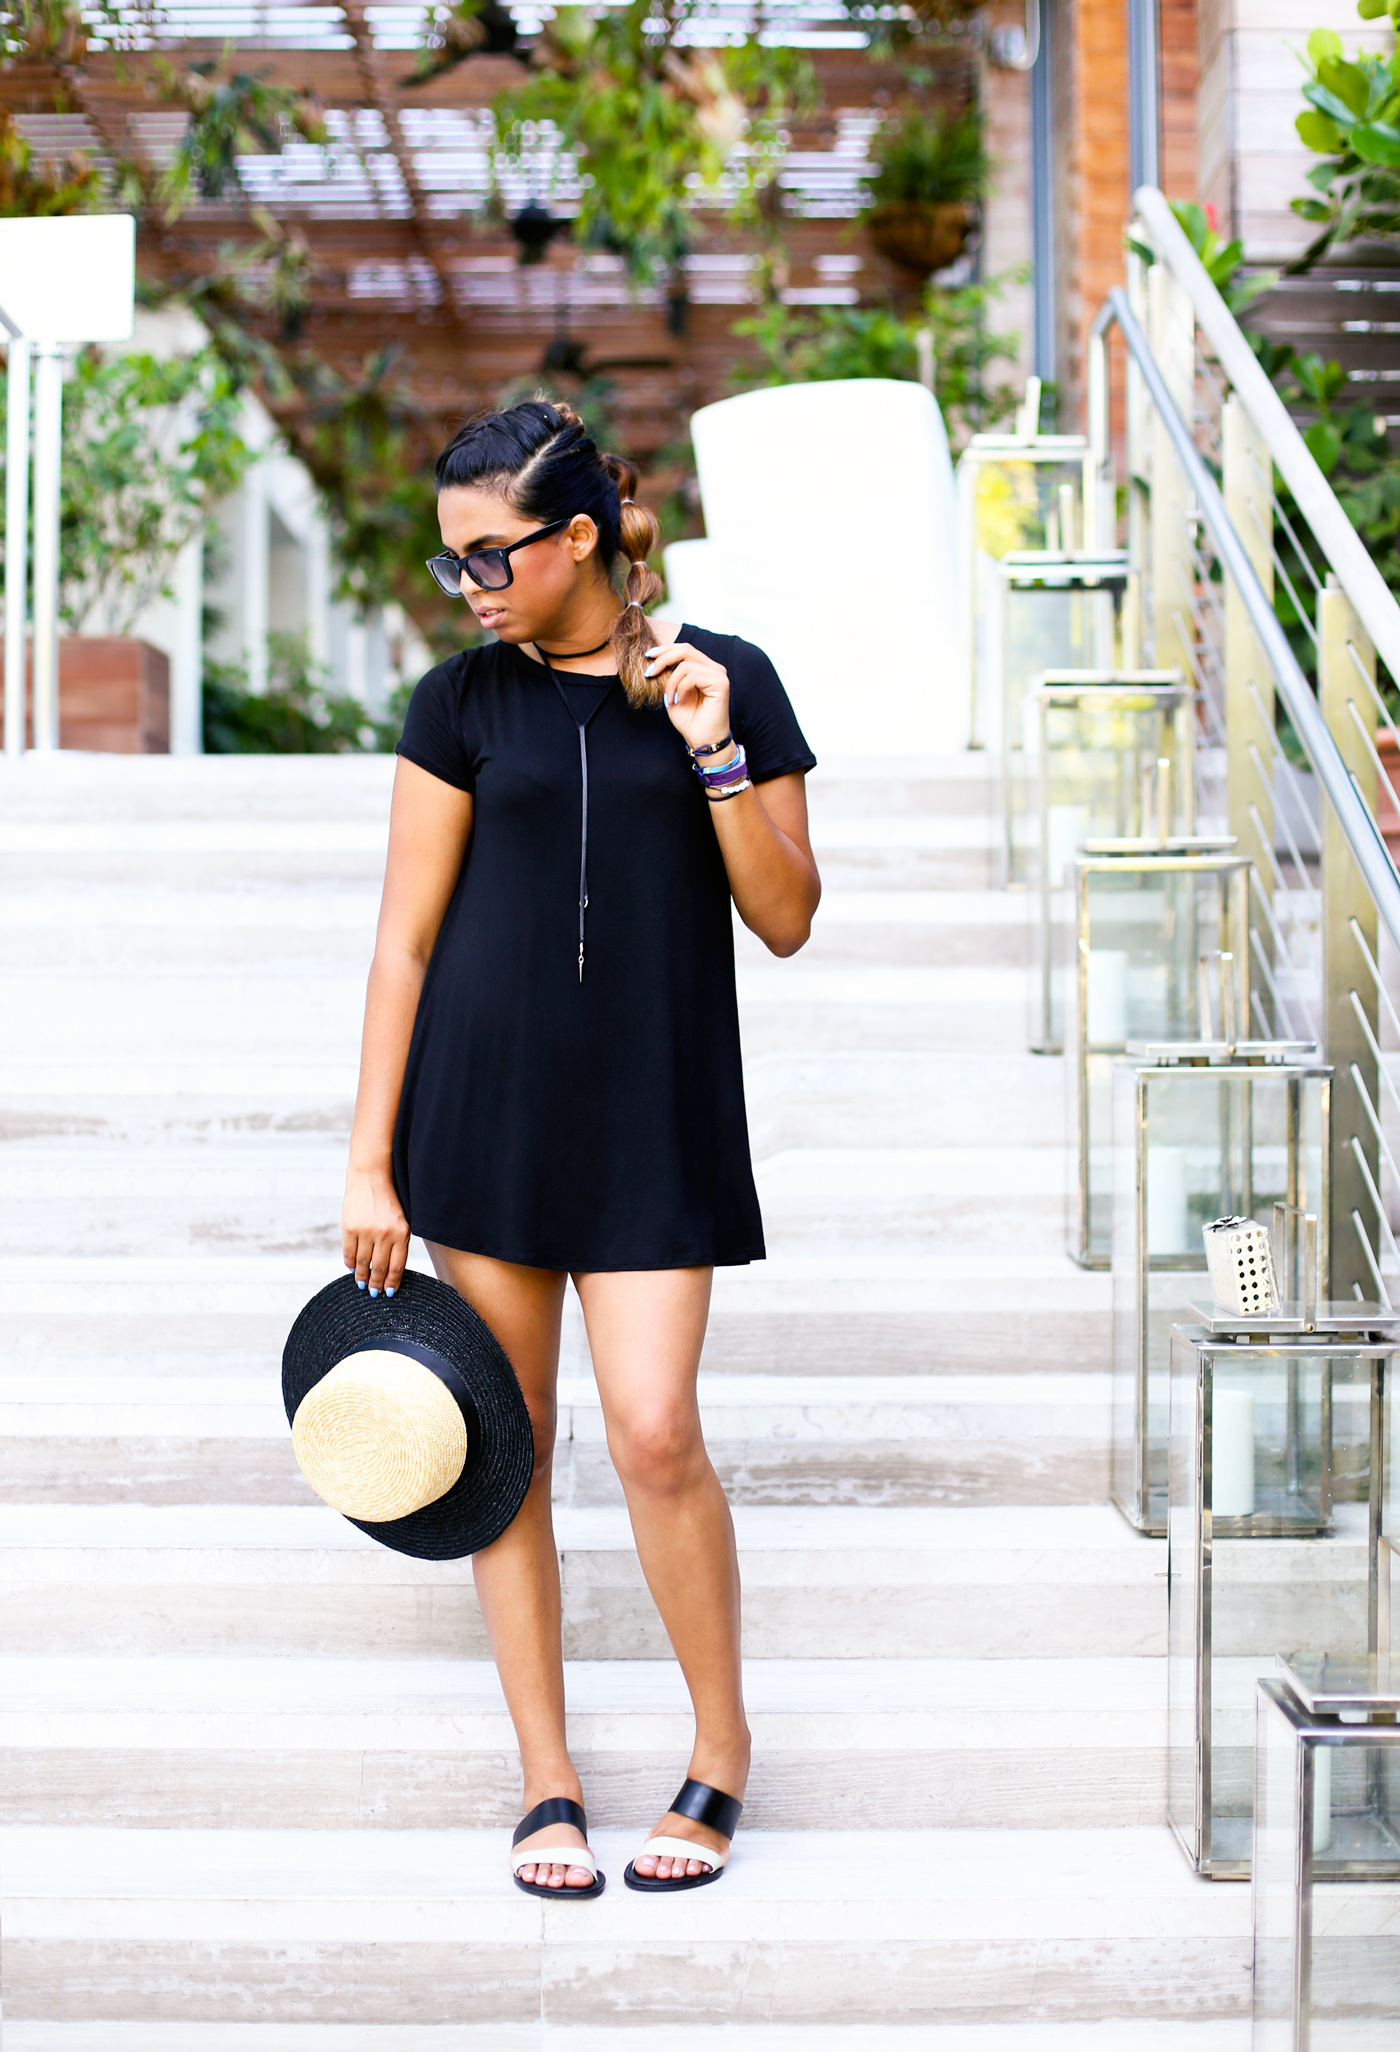 TAOS-Boater-Hat-Black-dress